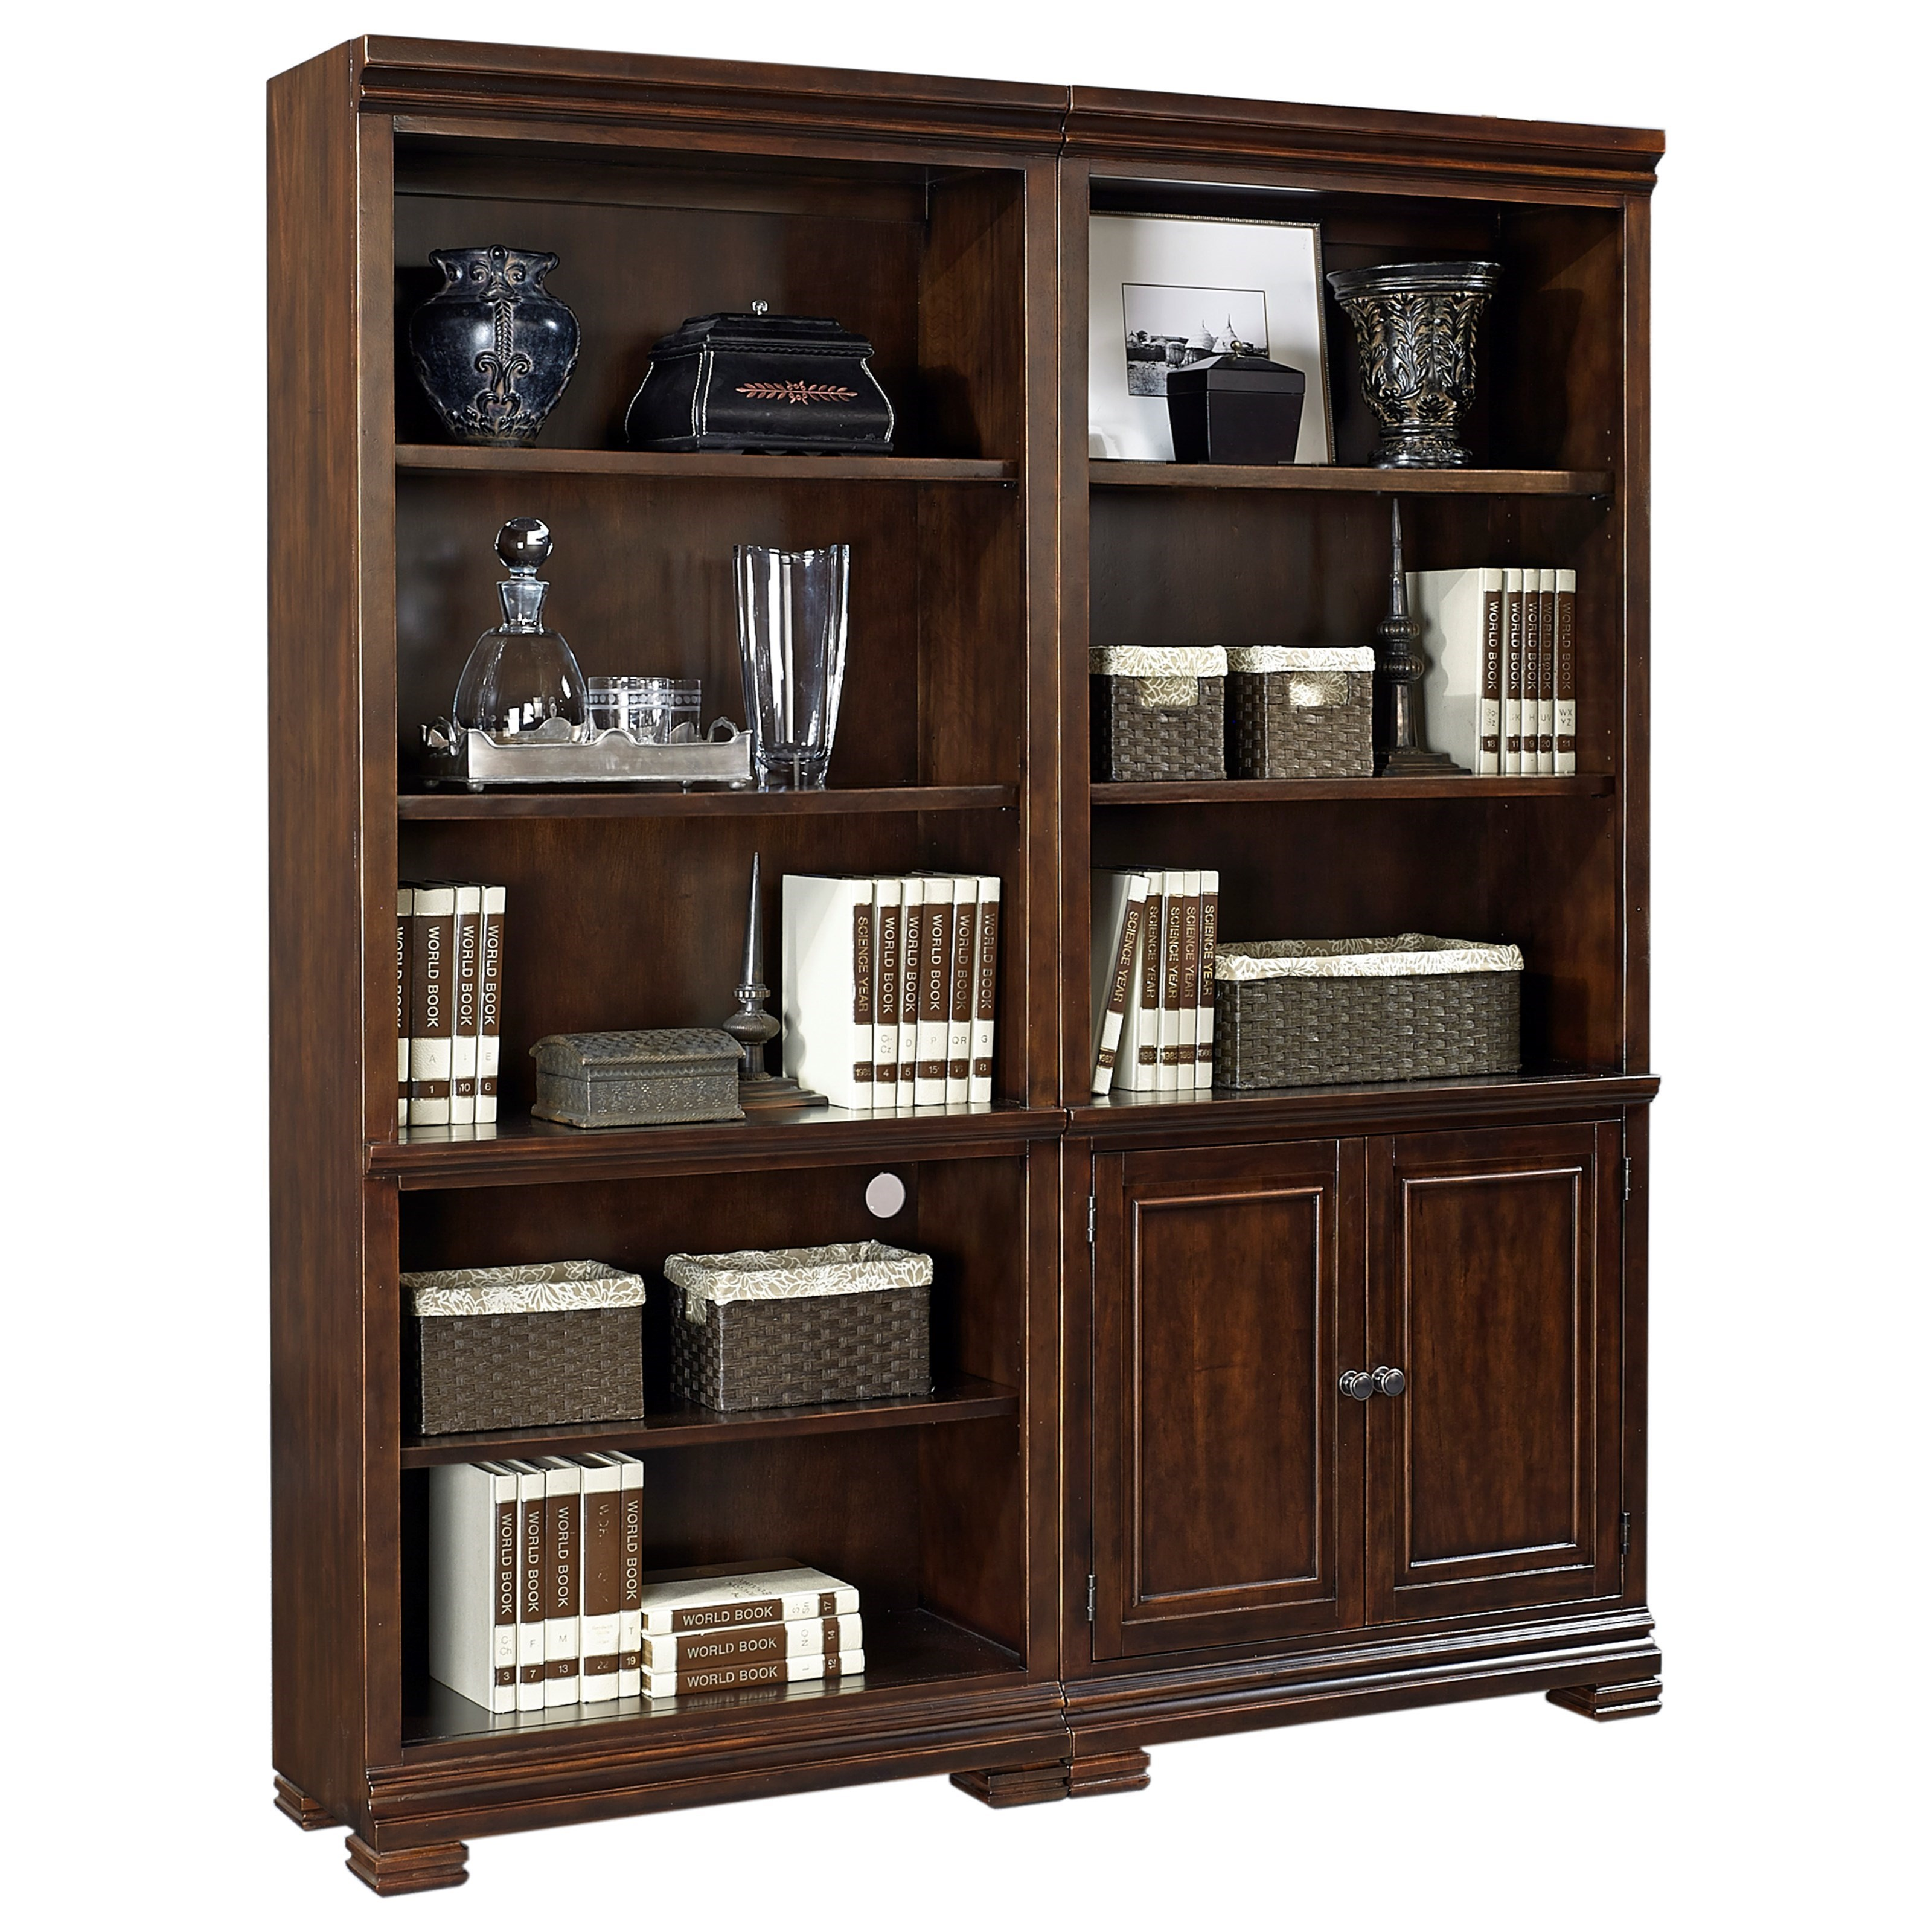 Weston Bookcase Wall by Aspenhome at Baer's Furniture